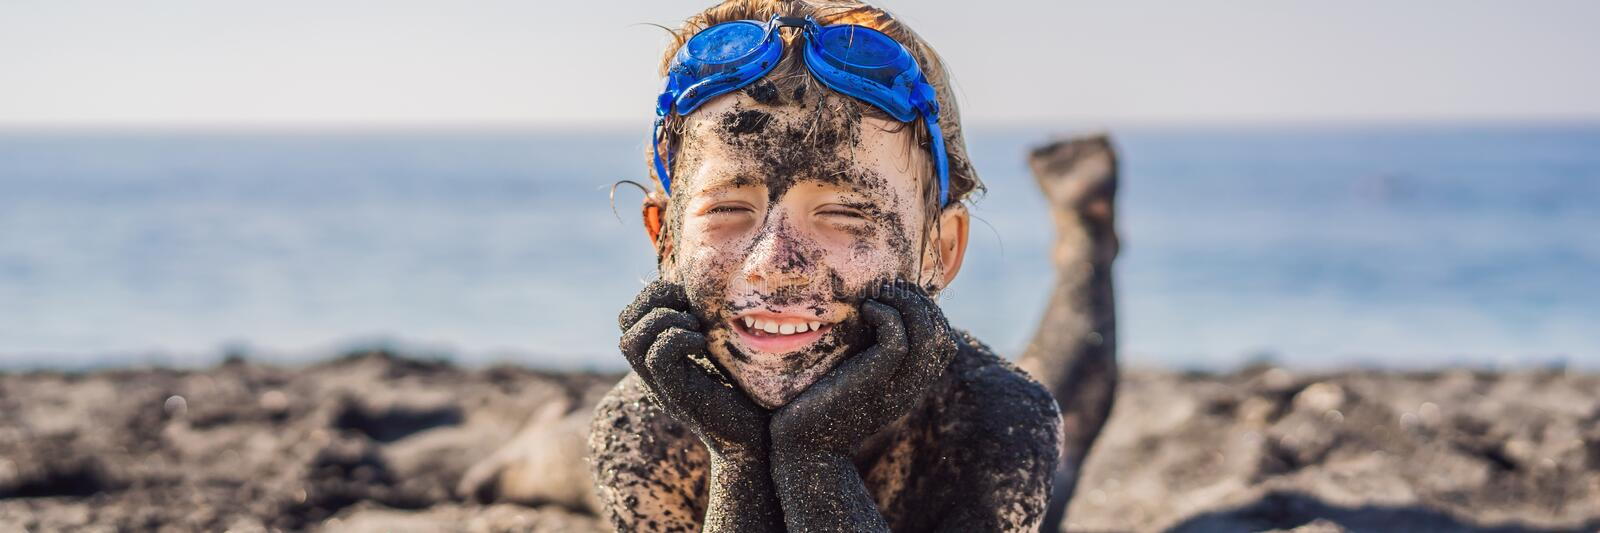 BANNER, LONG FORMAT Black Friday concept. Smiling boy with dirty Black face sitting and playing on black sand sea beach royalty free stock photography